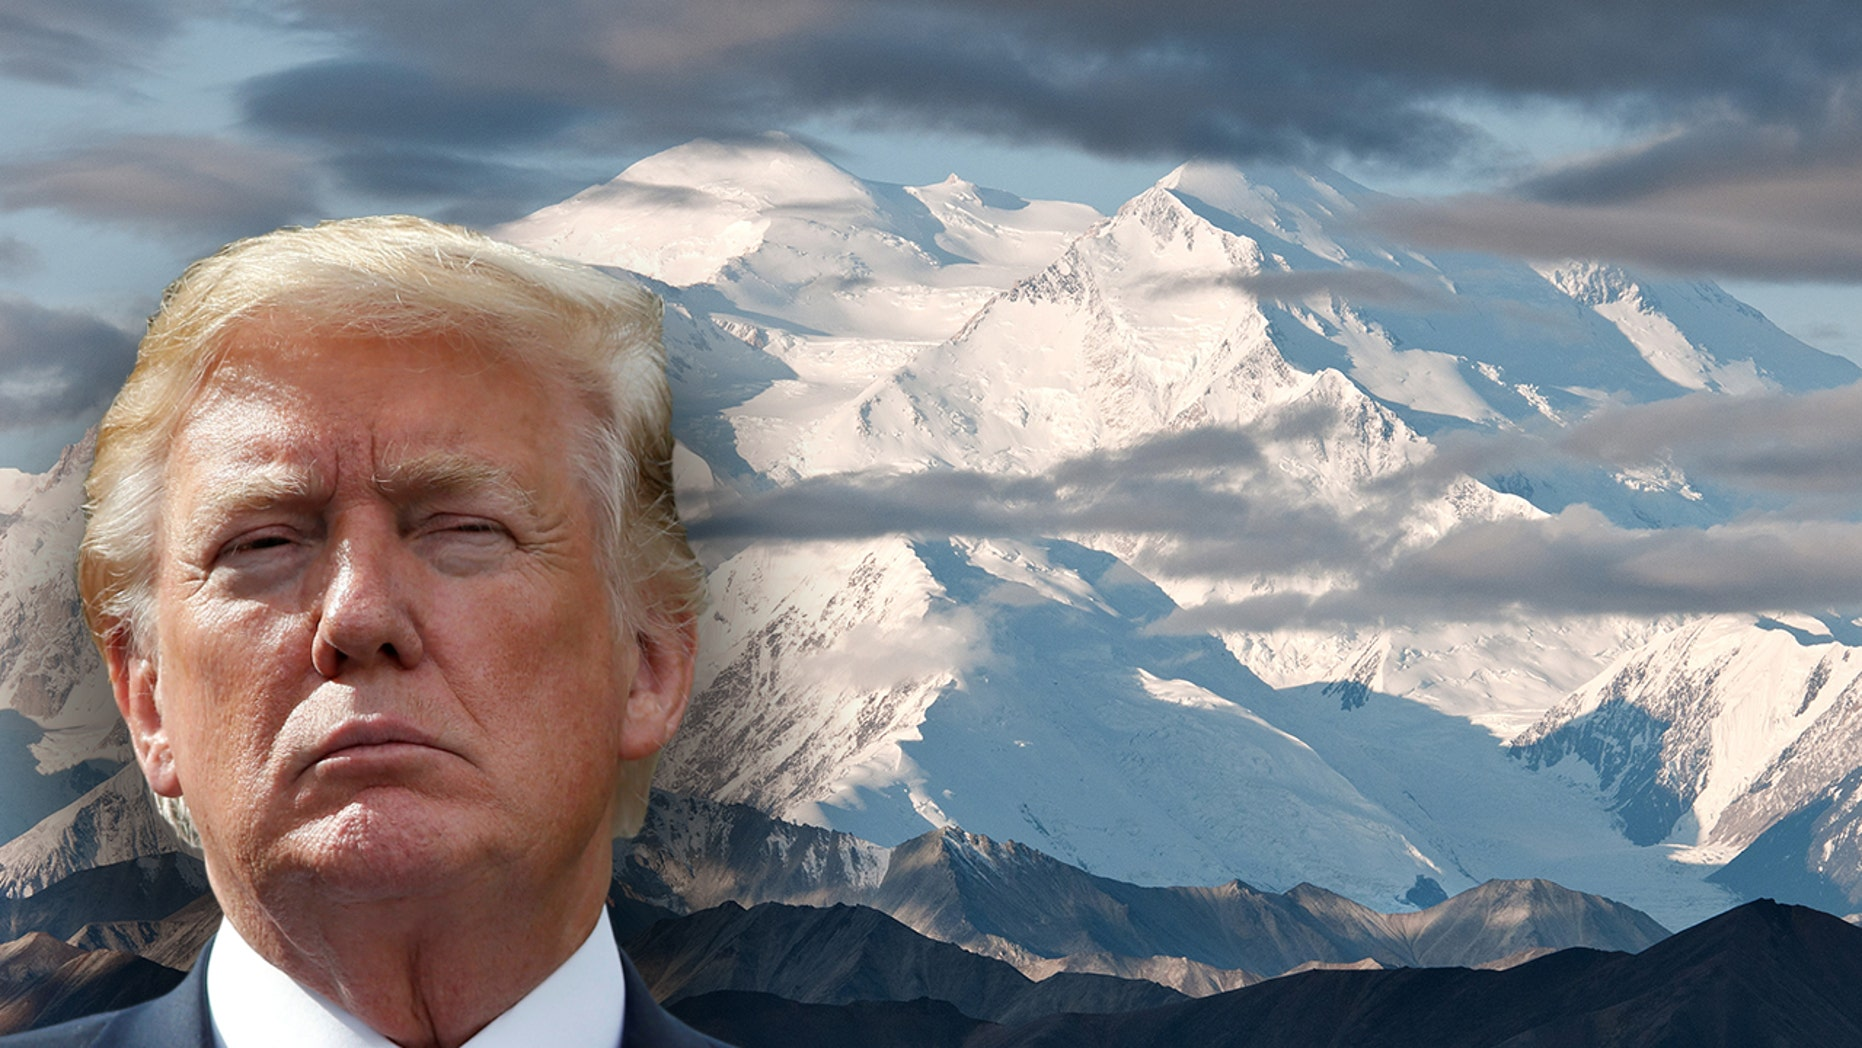 President Trump asked Alaska's two US senators what they thought about reversing the decision changing the name of the tallest mountain in North America from Mount McKinley to Denali.